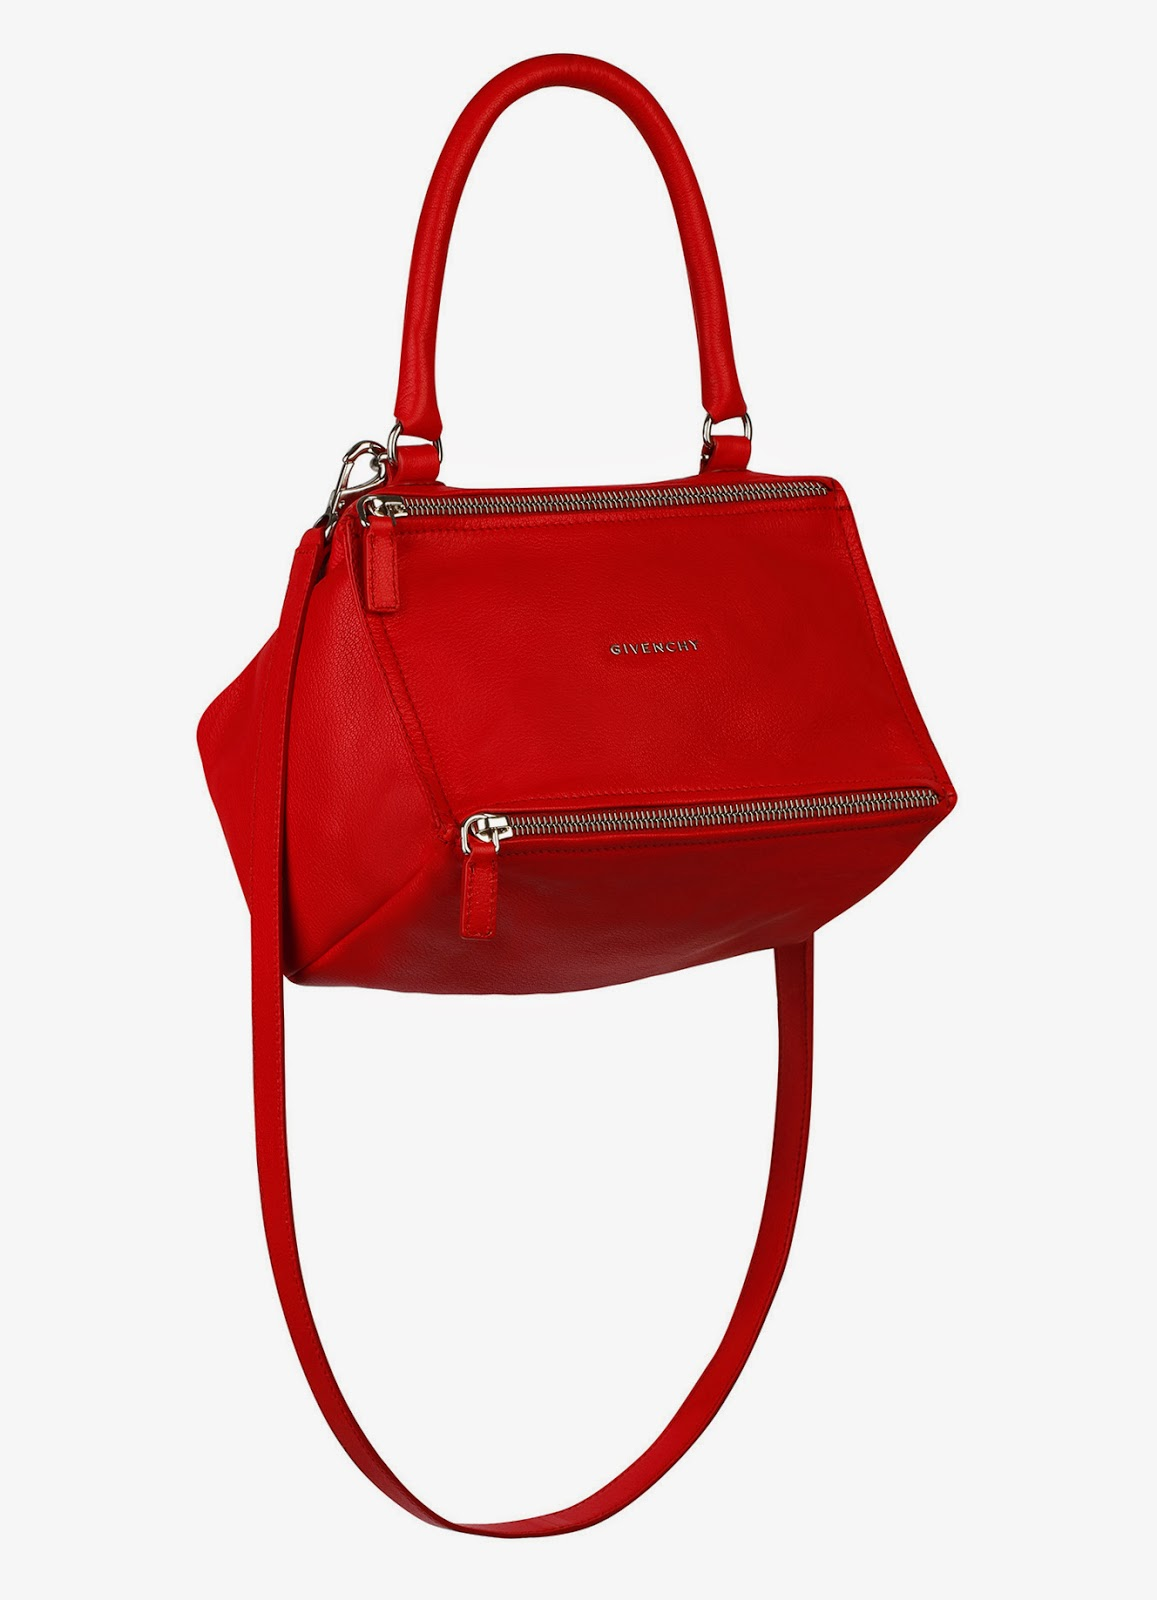 trend alert - red bags, givenchy pandora bag in red